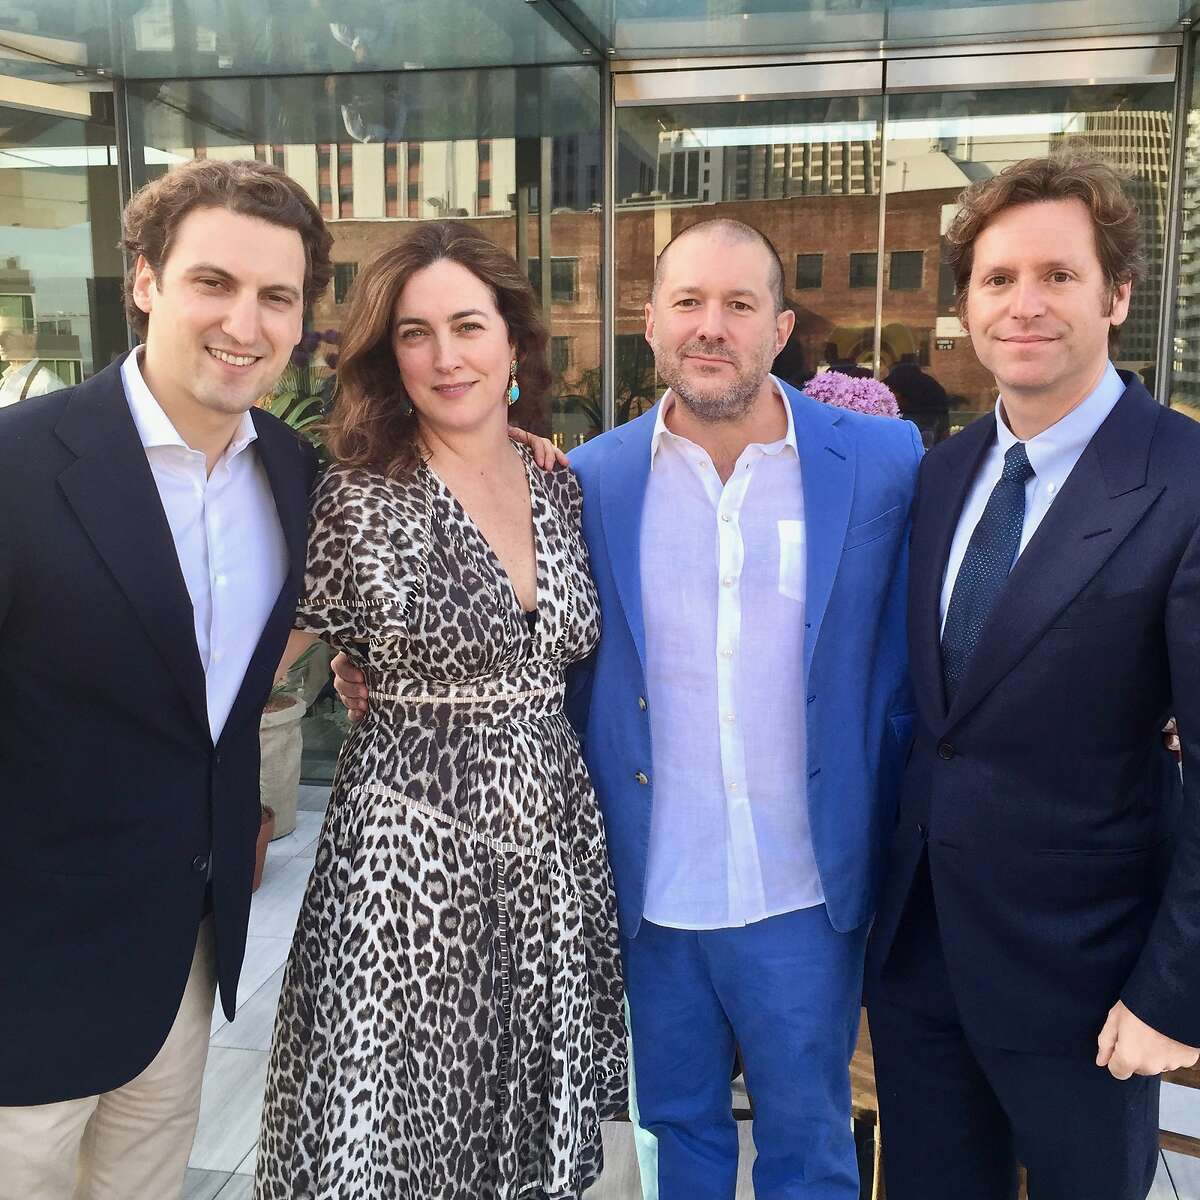 Tech entrepreneur Trevor Traina (far right, in June 2015) has been officially nominated by President Donald Trump to serve as the U.S. Ambassador to Austria, pending Senate approval.